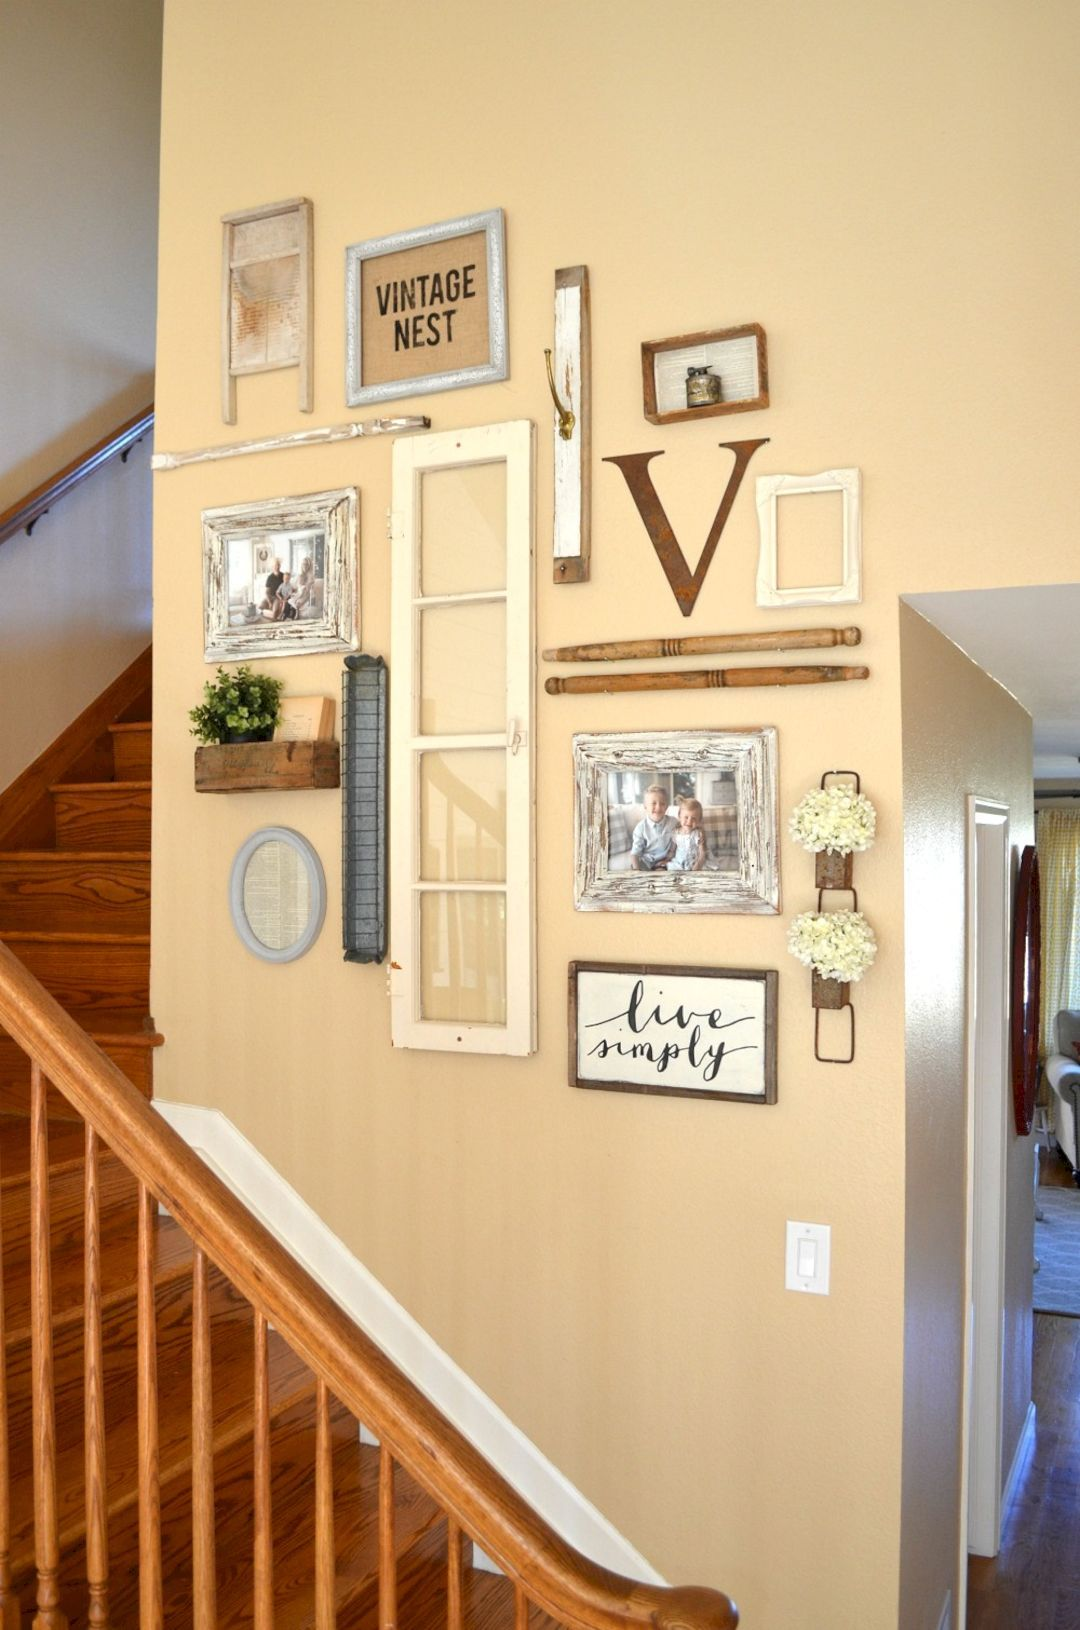 30 Wonderful Stairway Gallery Wall Ideas | Stairway gallery wall ...